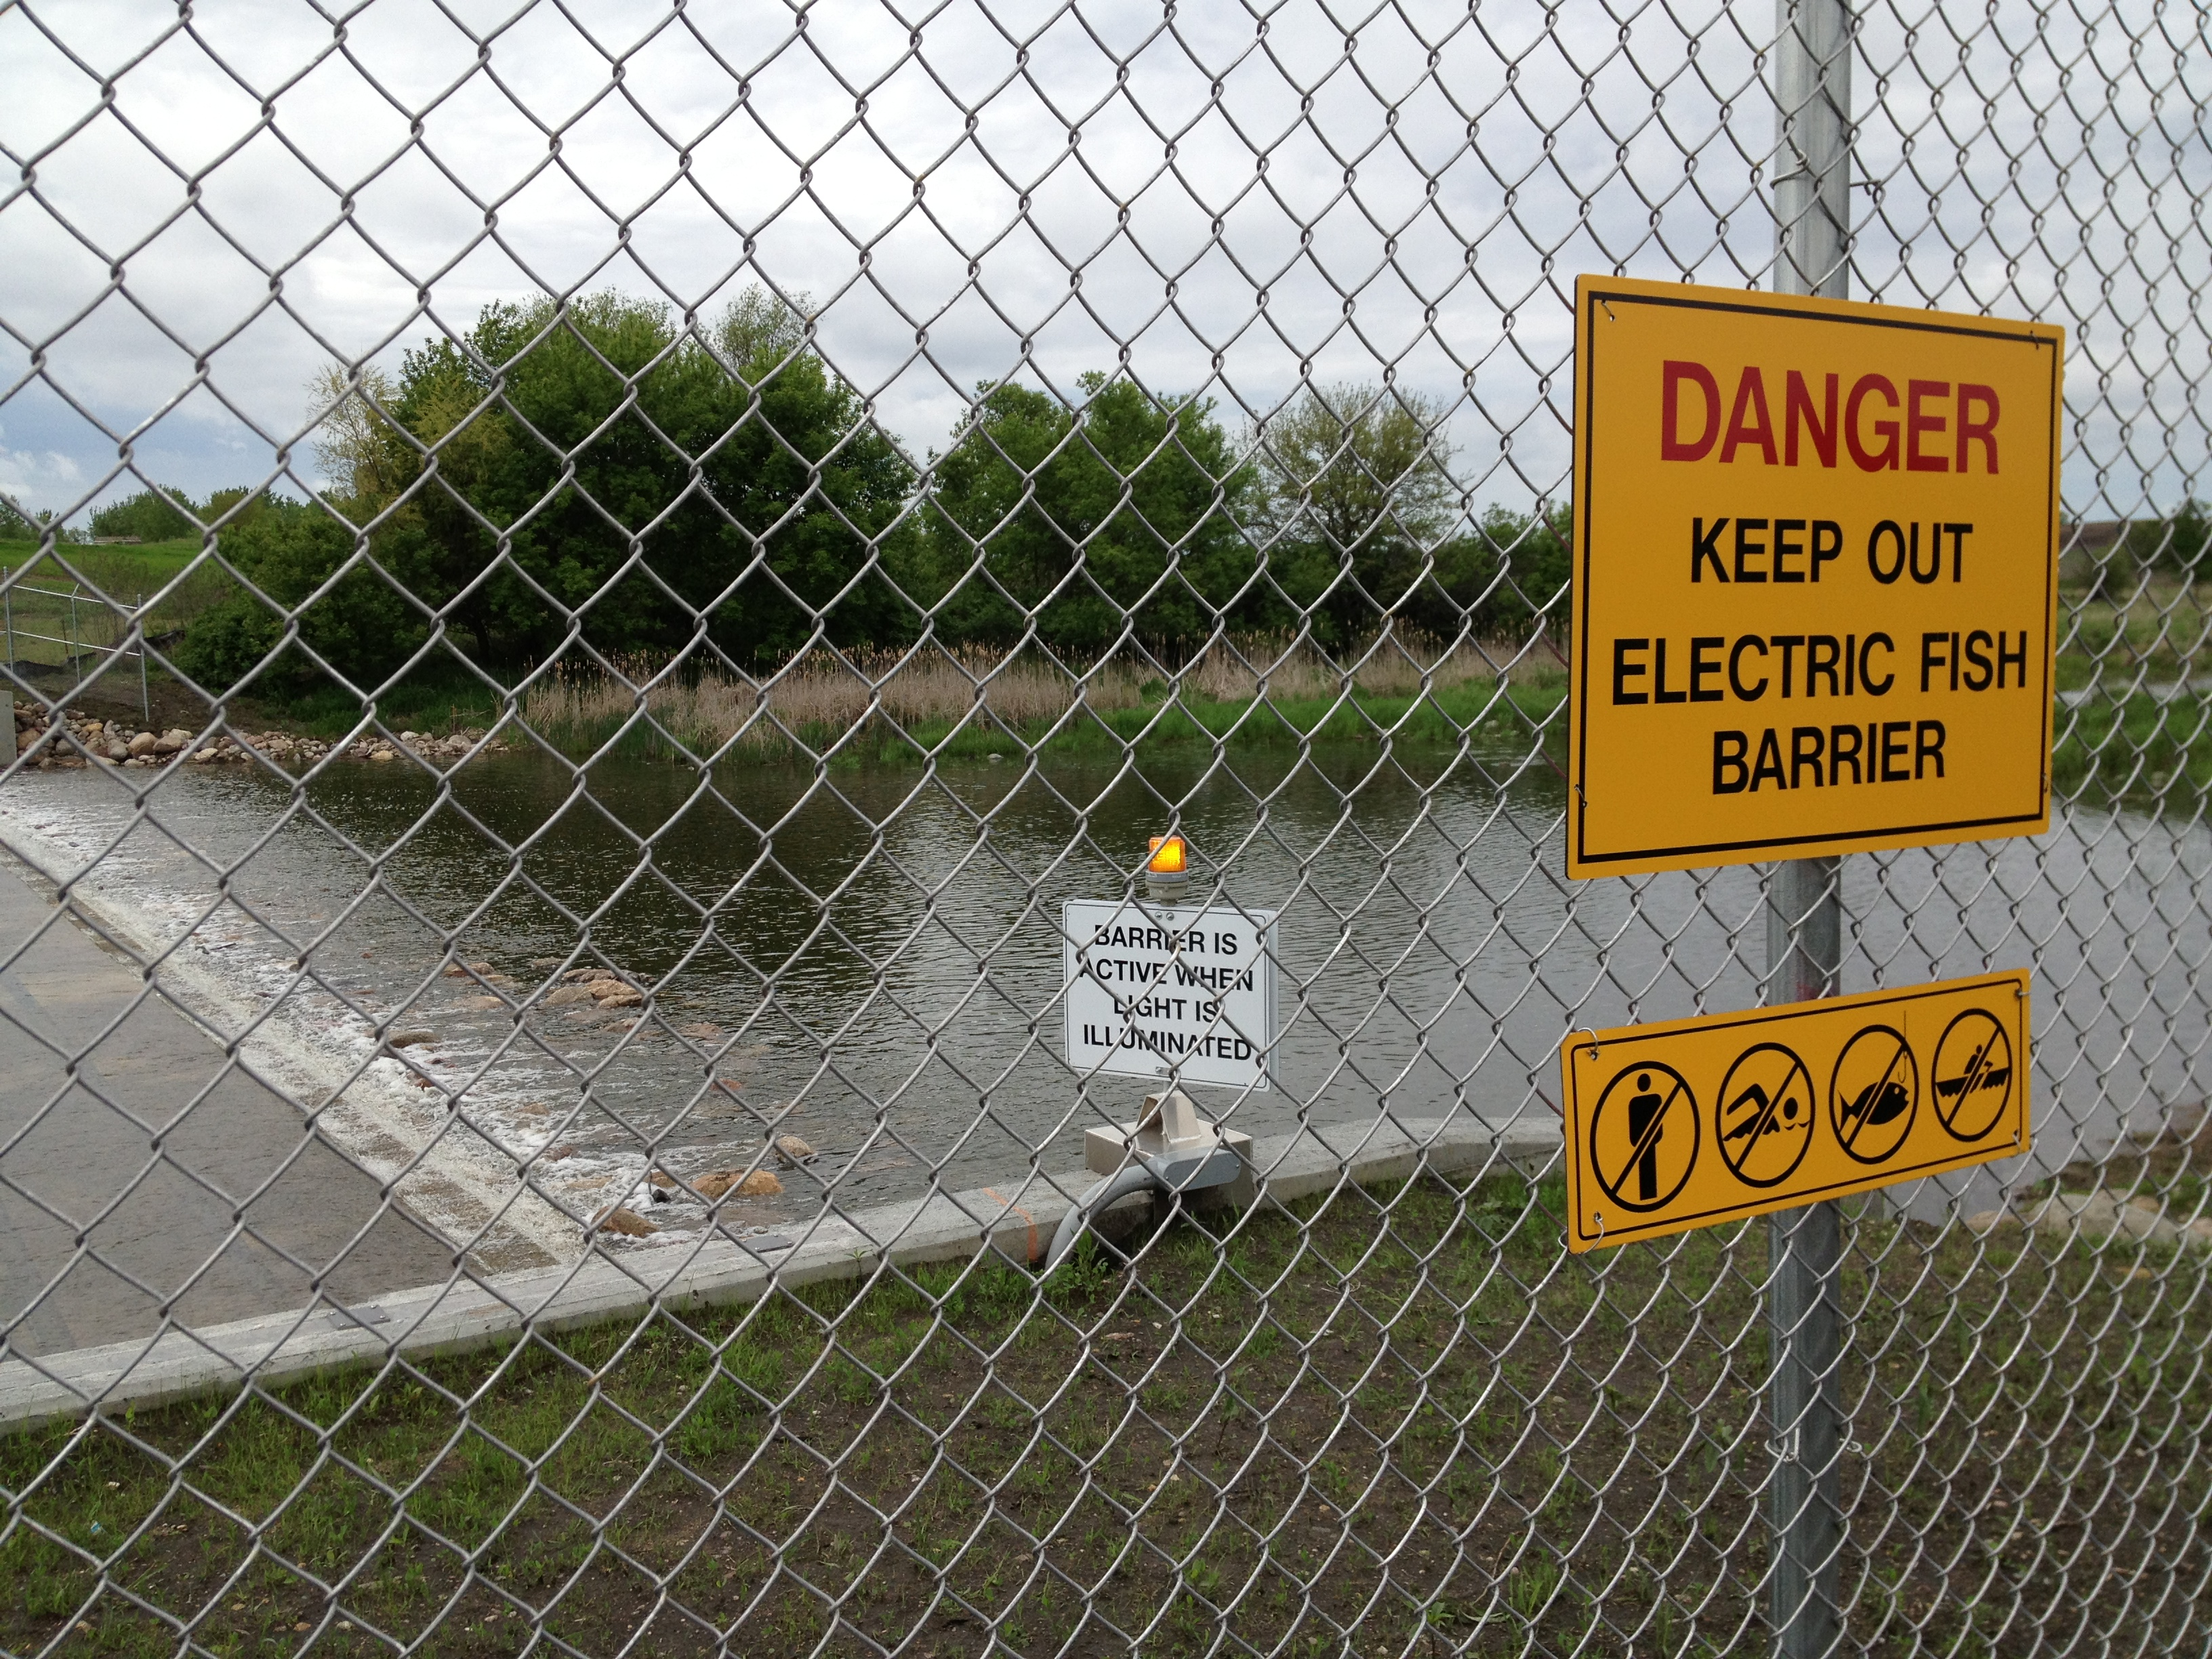 Electric fish barrier operating